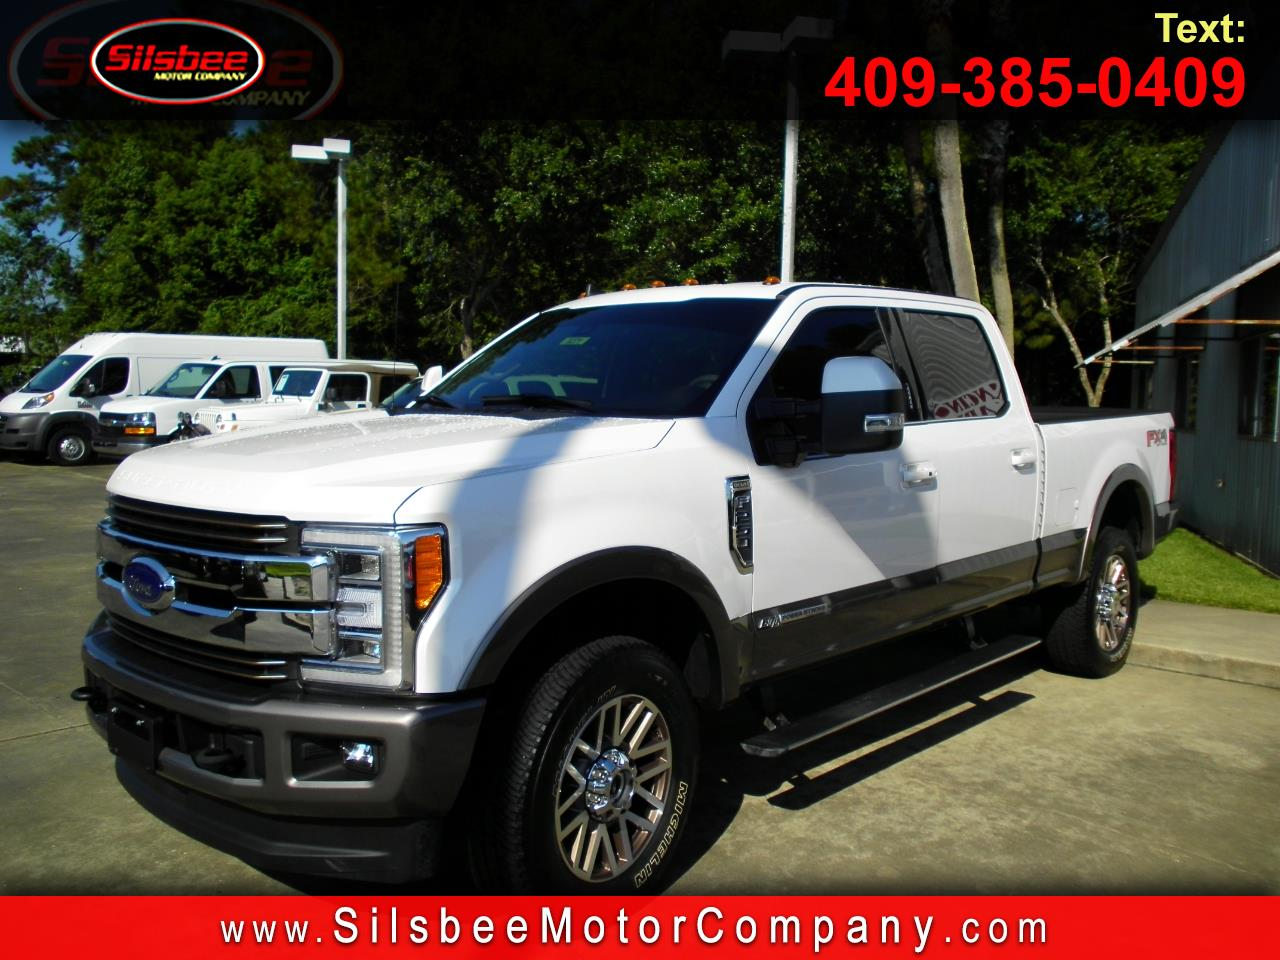 Silsbee Motor Company >> Silsbee Motor Company Best New Car Release 2020